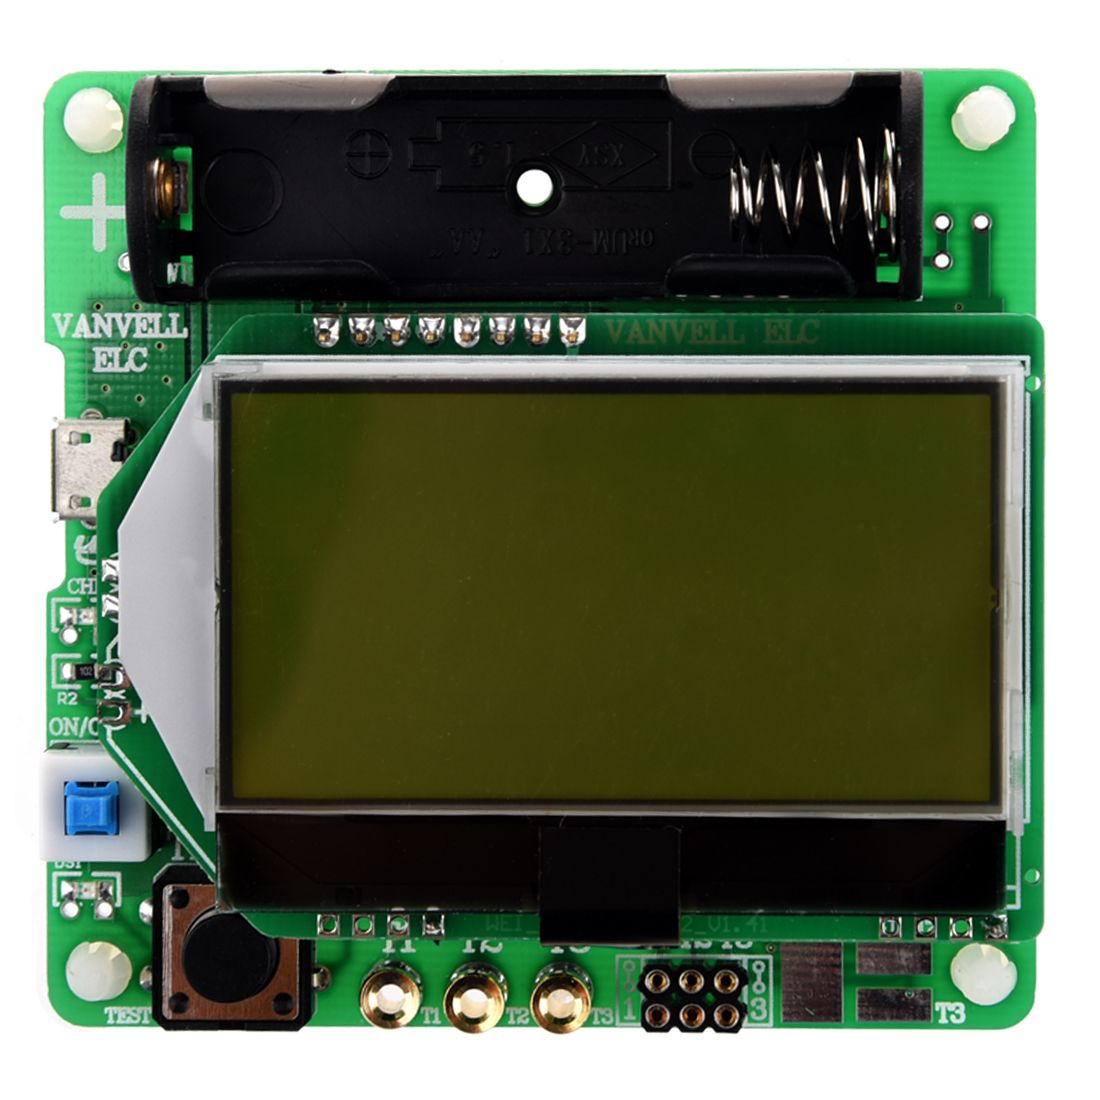 M328 Multifunctional Tester Capacitance Diode Paid Transistors Lcr Bridge Ebay Inductor Esr Meter With Usb Interface Green